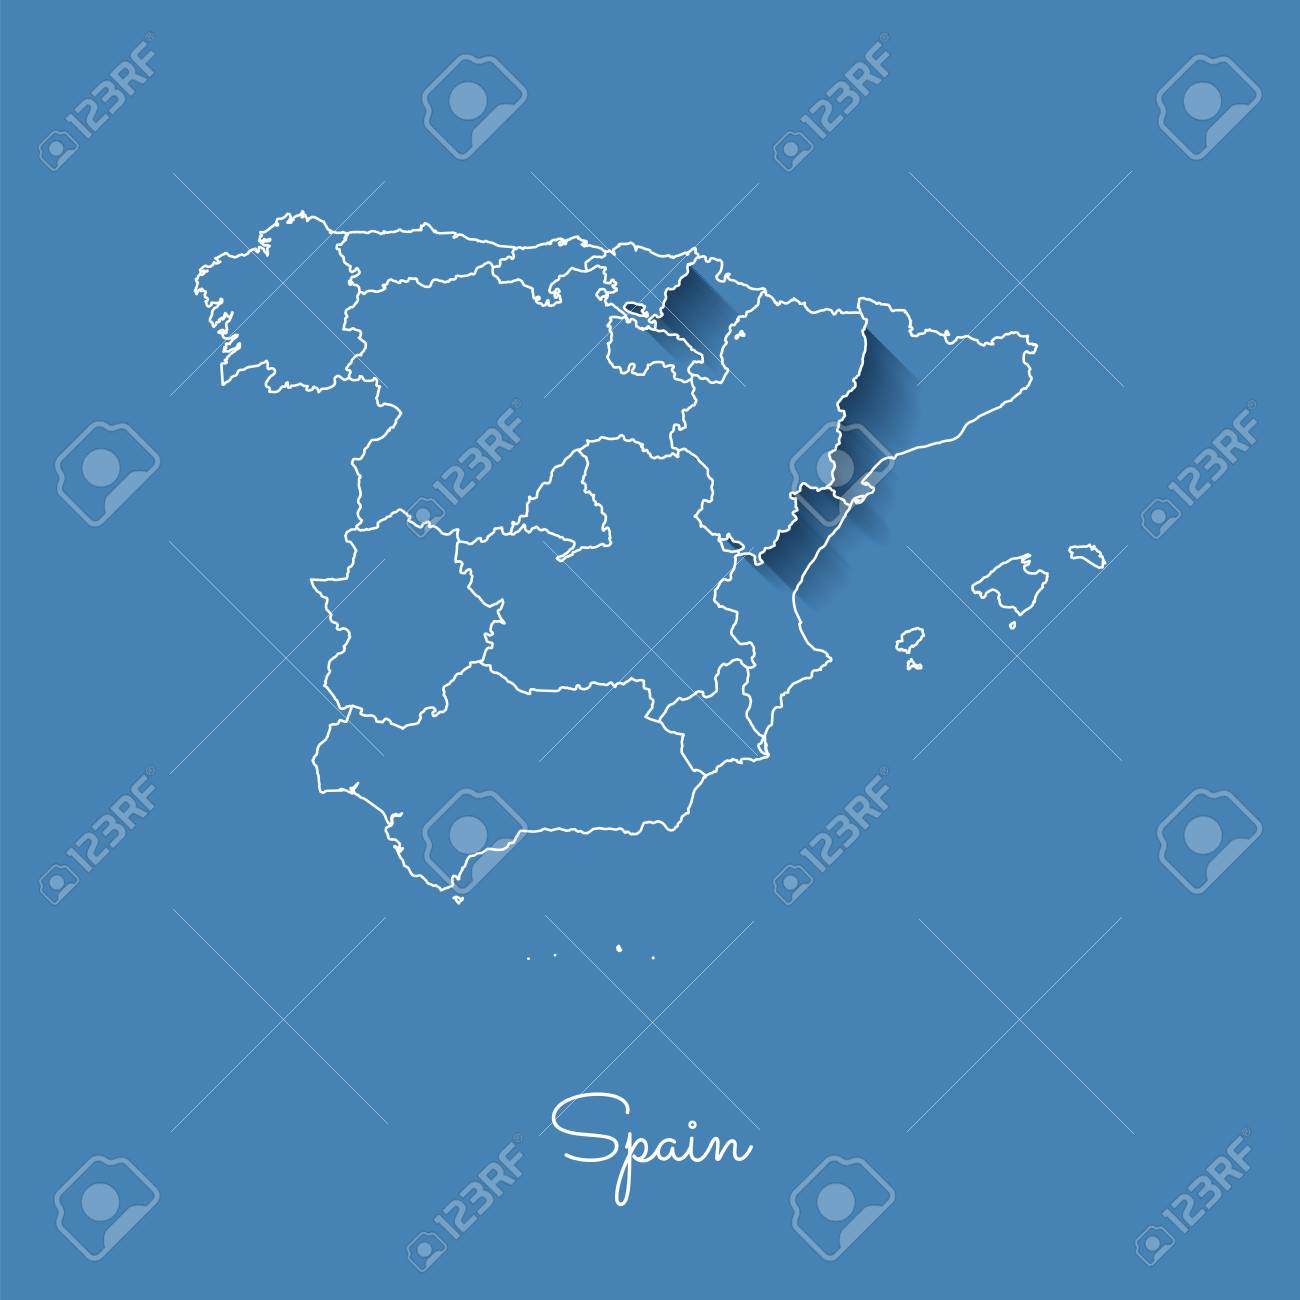 Spain Region Map: Blue With White Outline And Shadow On Blue ...